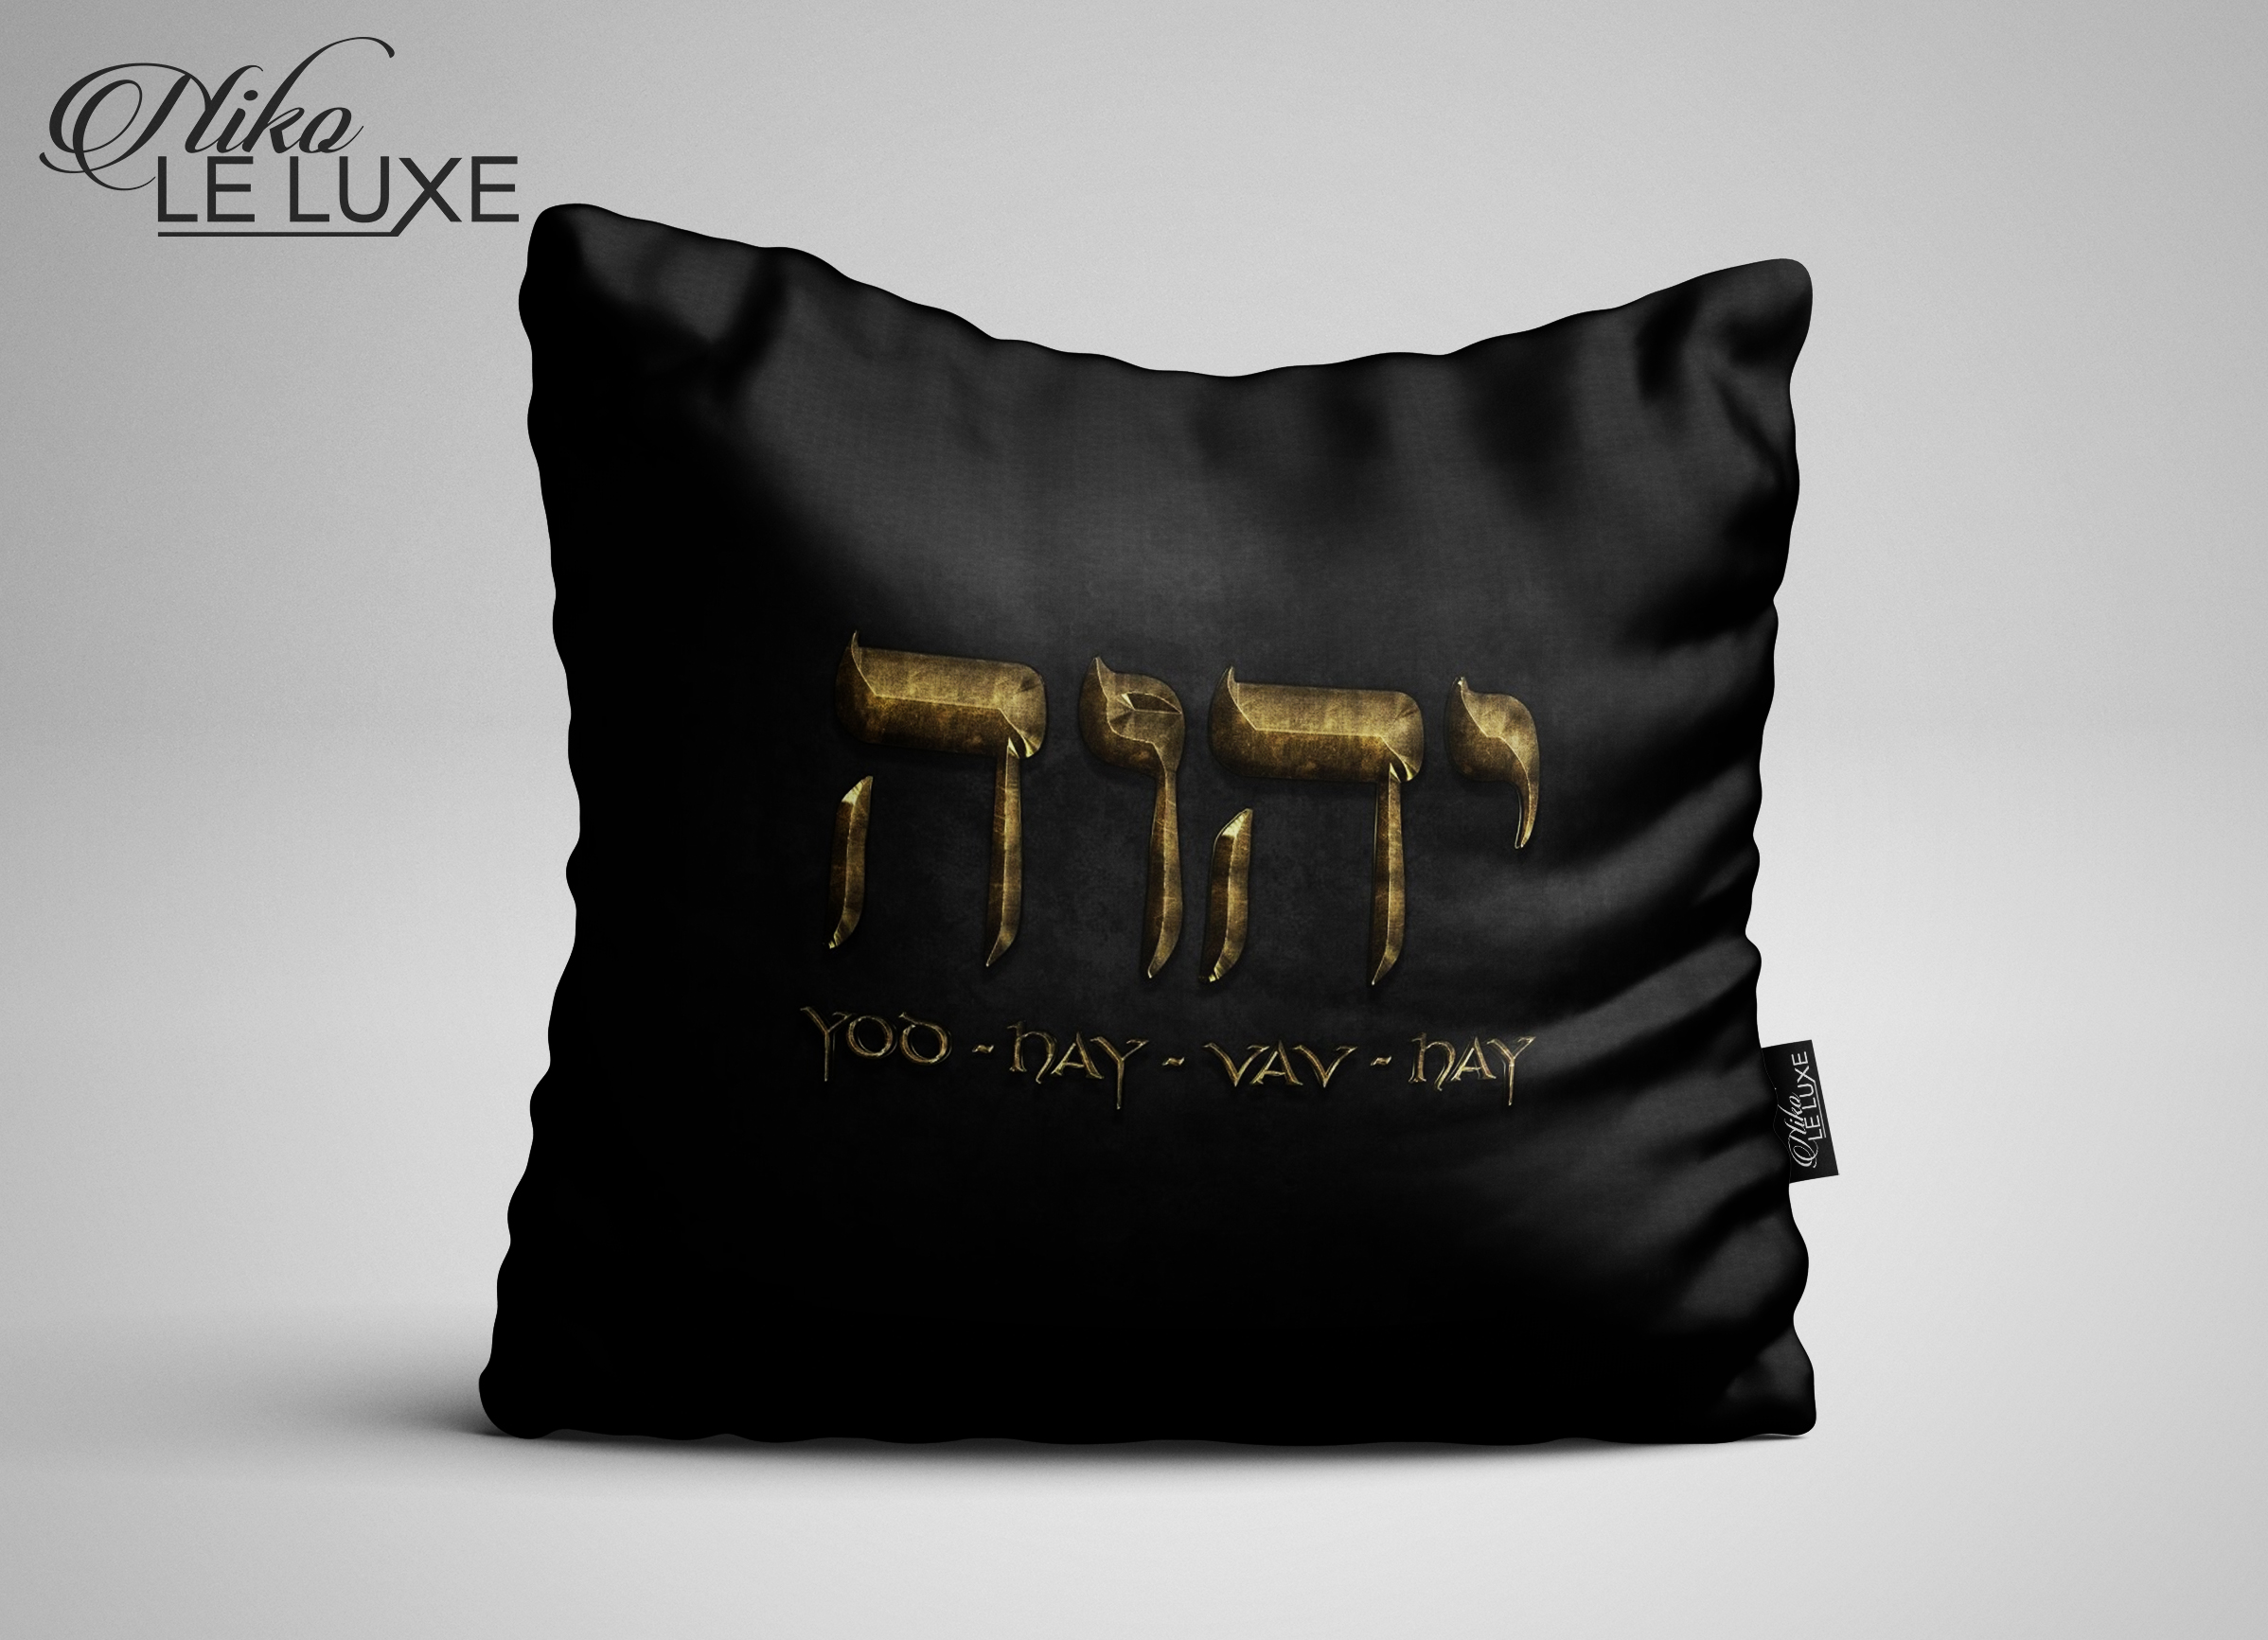 YHWH, the God of Israel